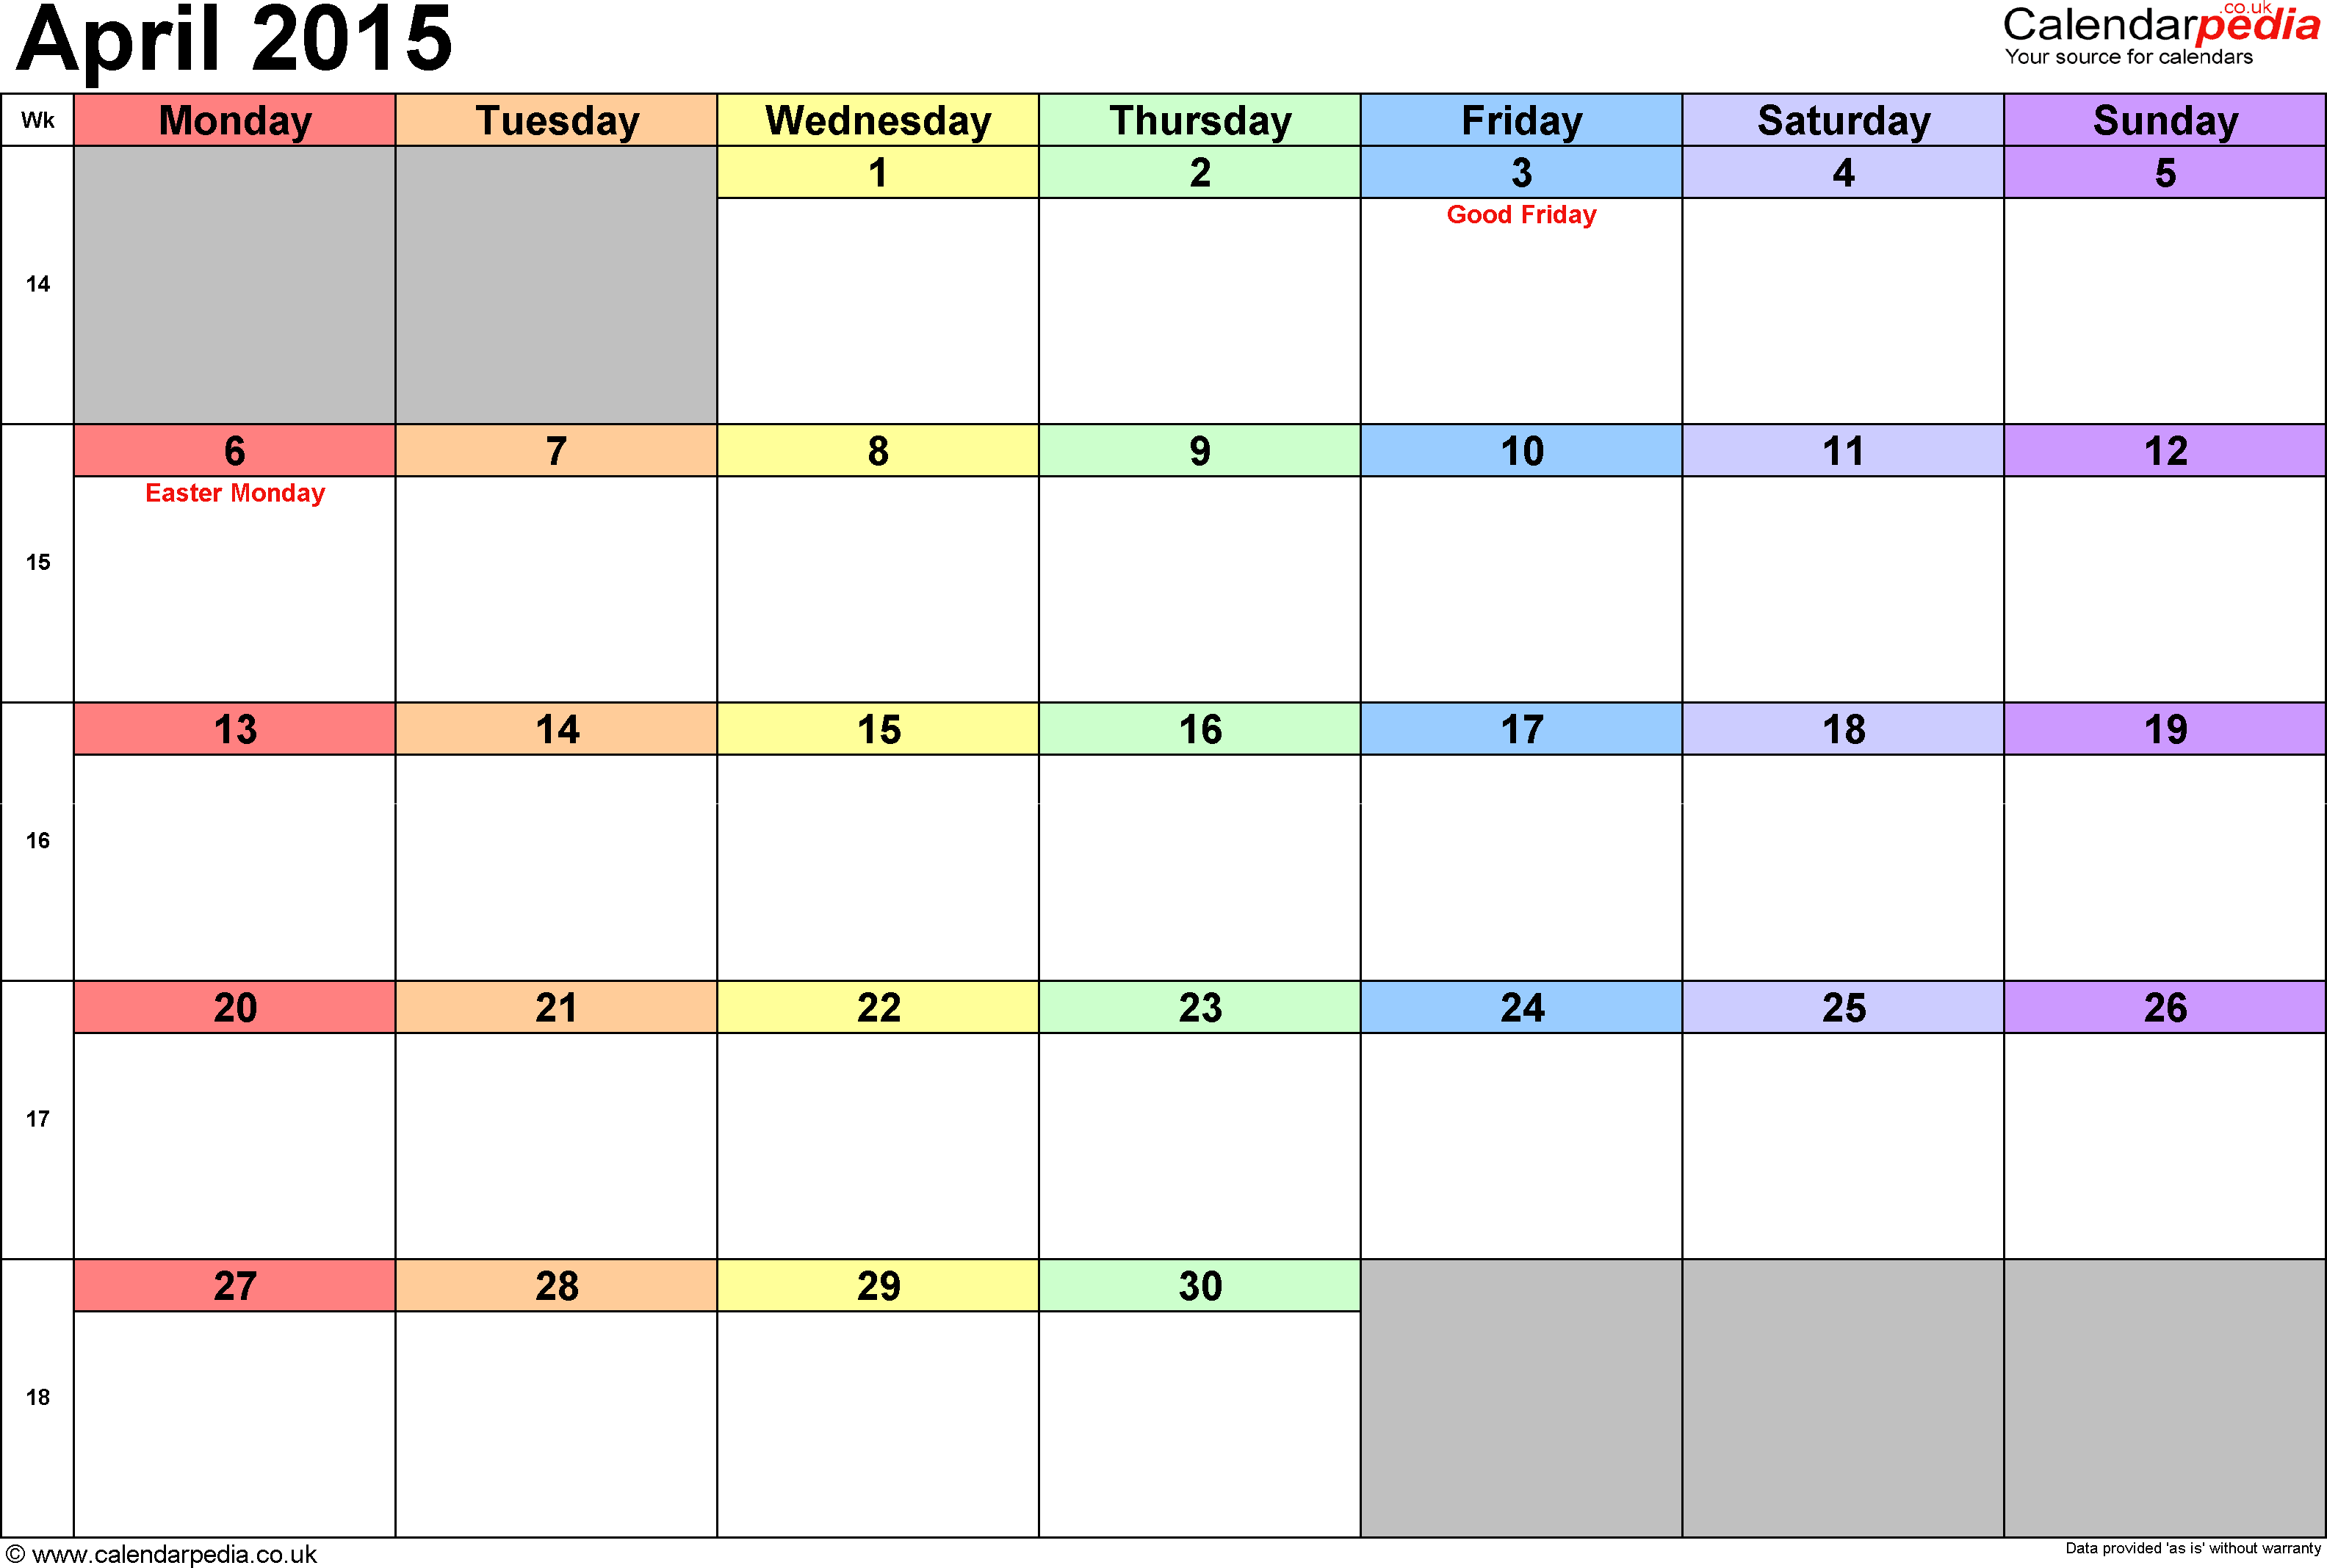 Calendar April 2015, landscape orientation, 1 page, with UK bank holidays and week numbers